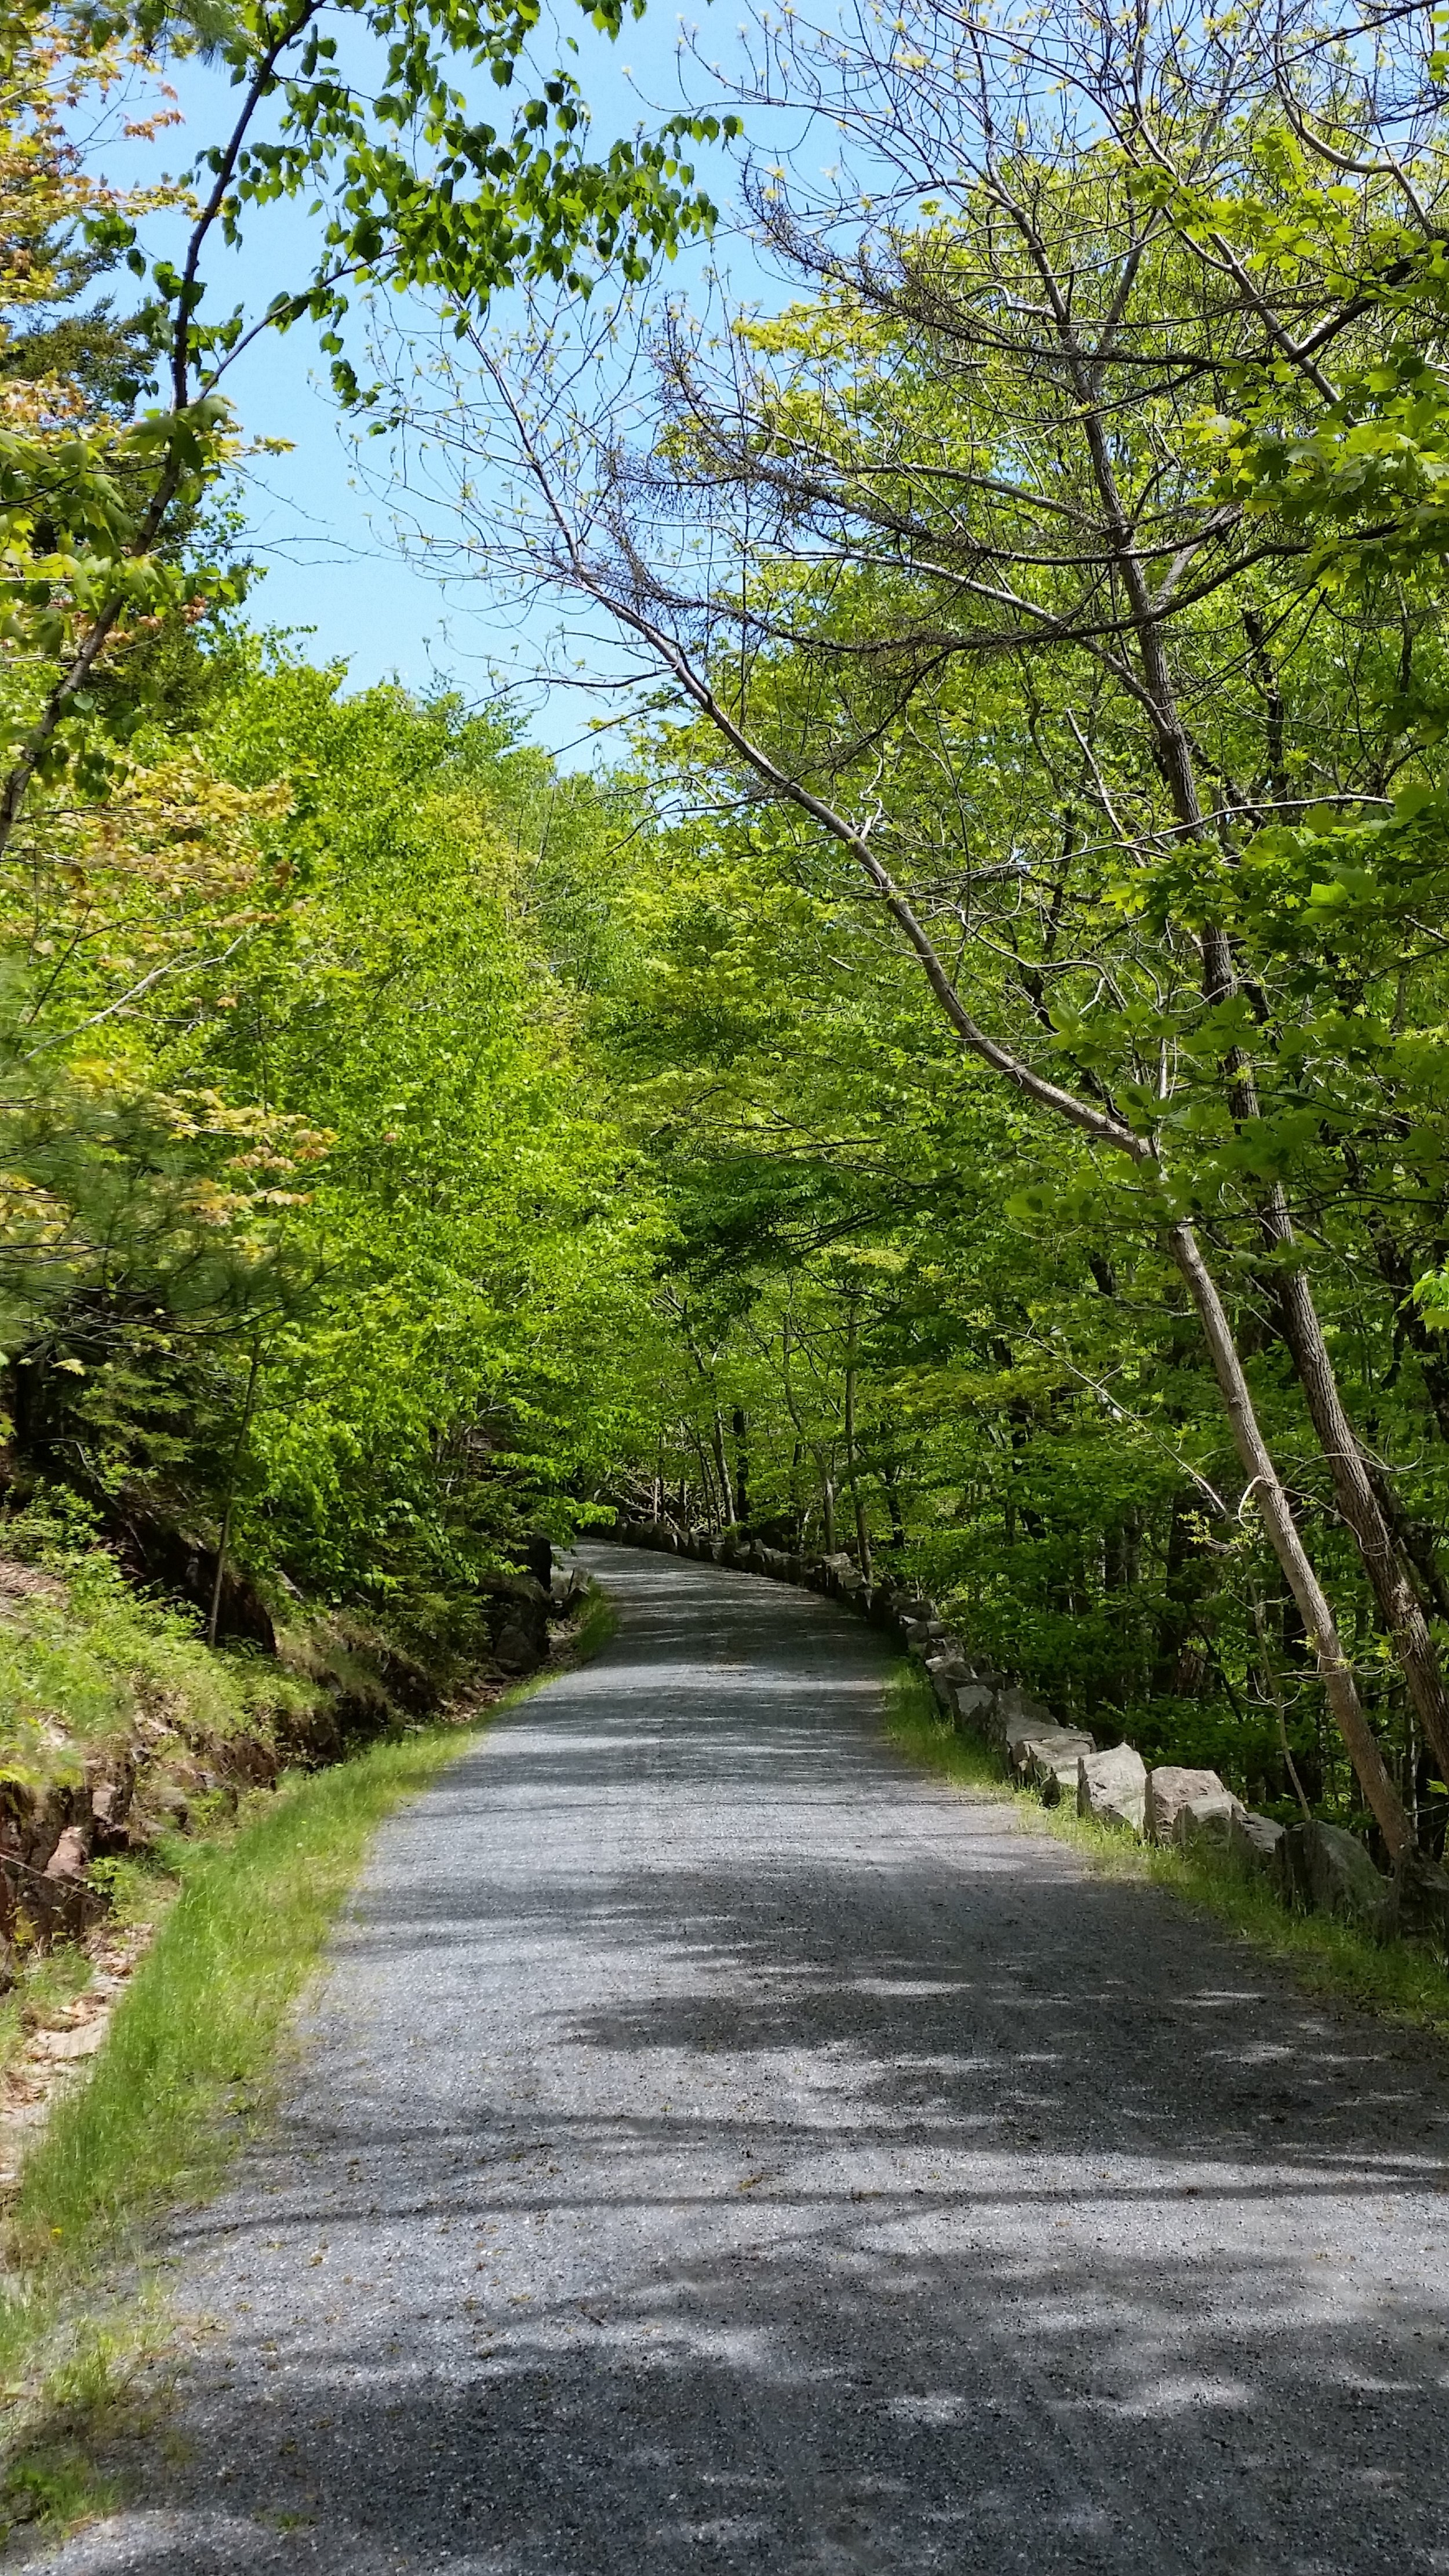 Carriage Road, Acadia National Park, ME